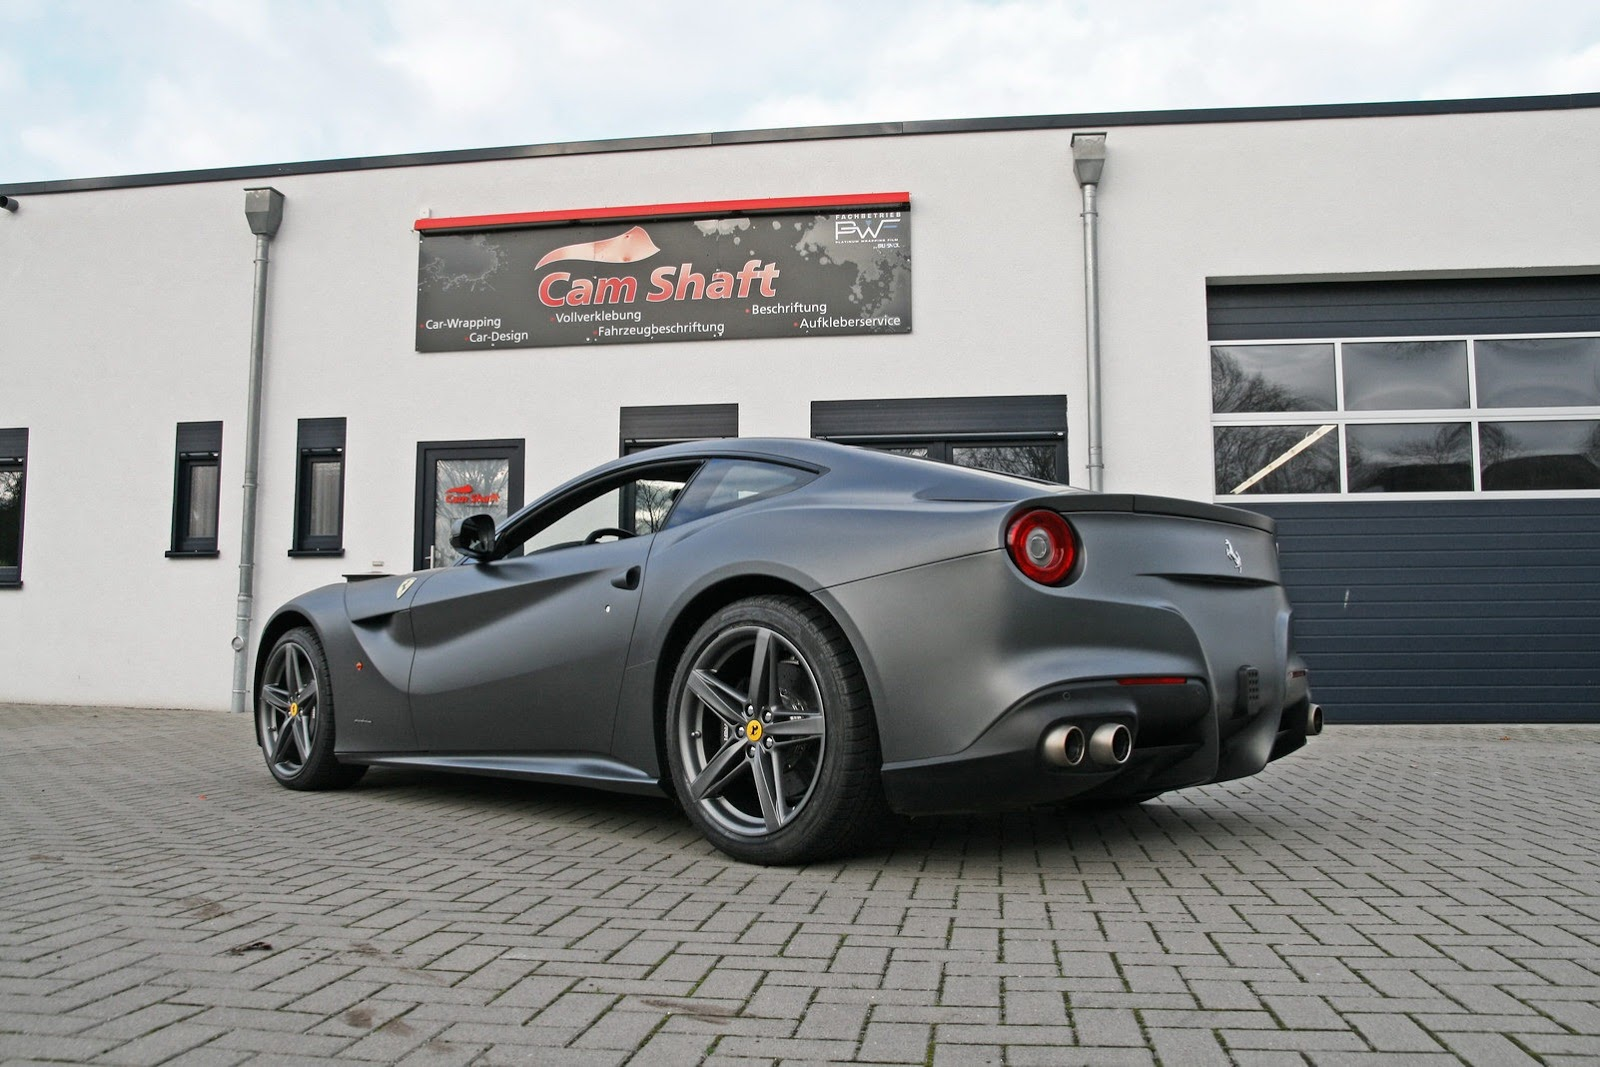 Ferrari F12 Berlinetta Wrapped By Cam Shaft Autoevolution